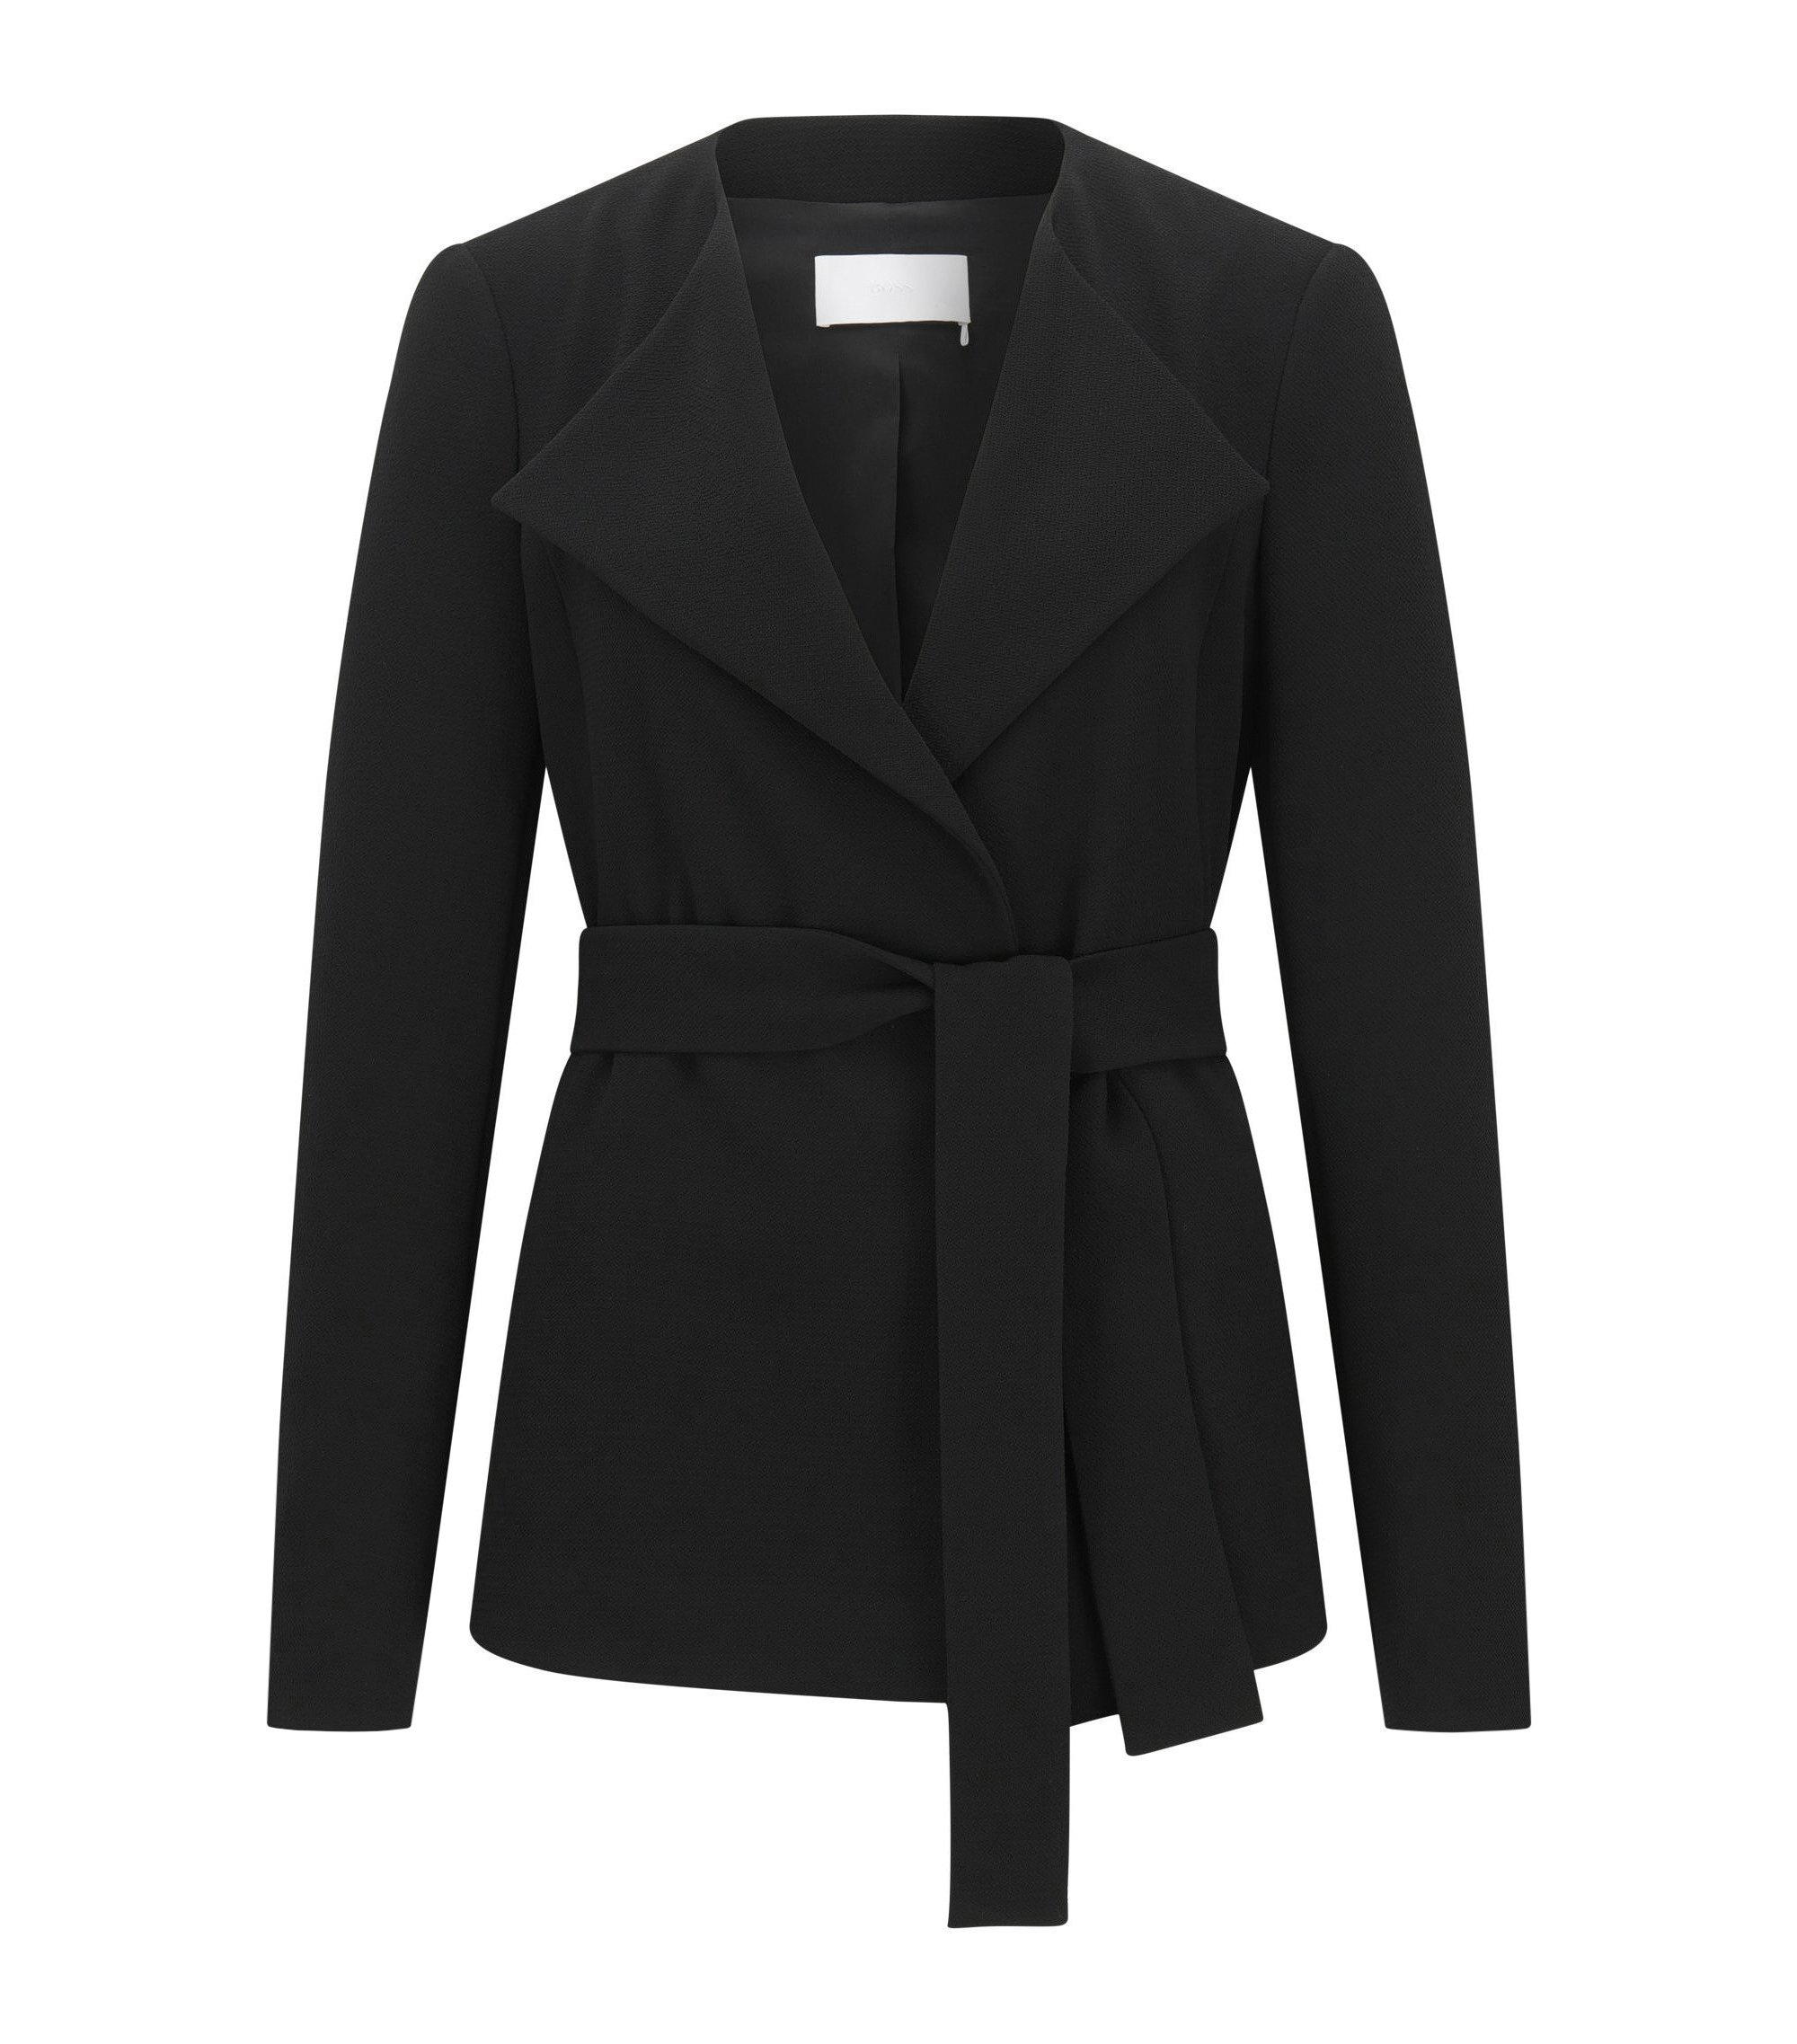 Relaxed-fit blazer in crepe fabric with belt detail , Black